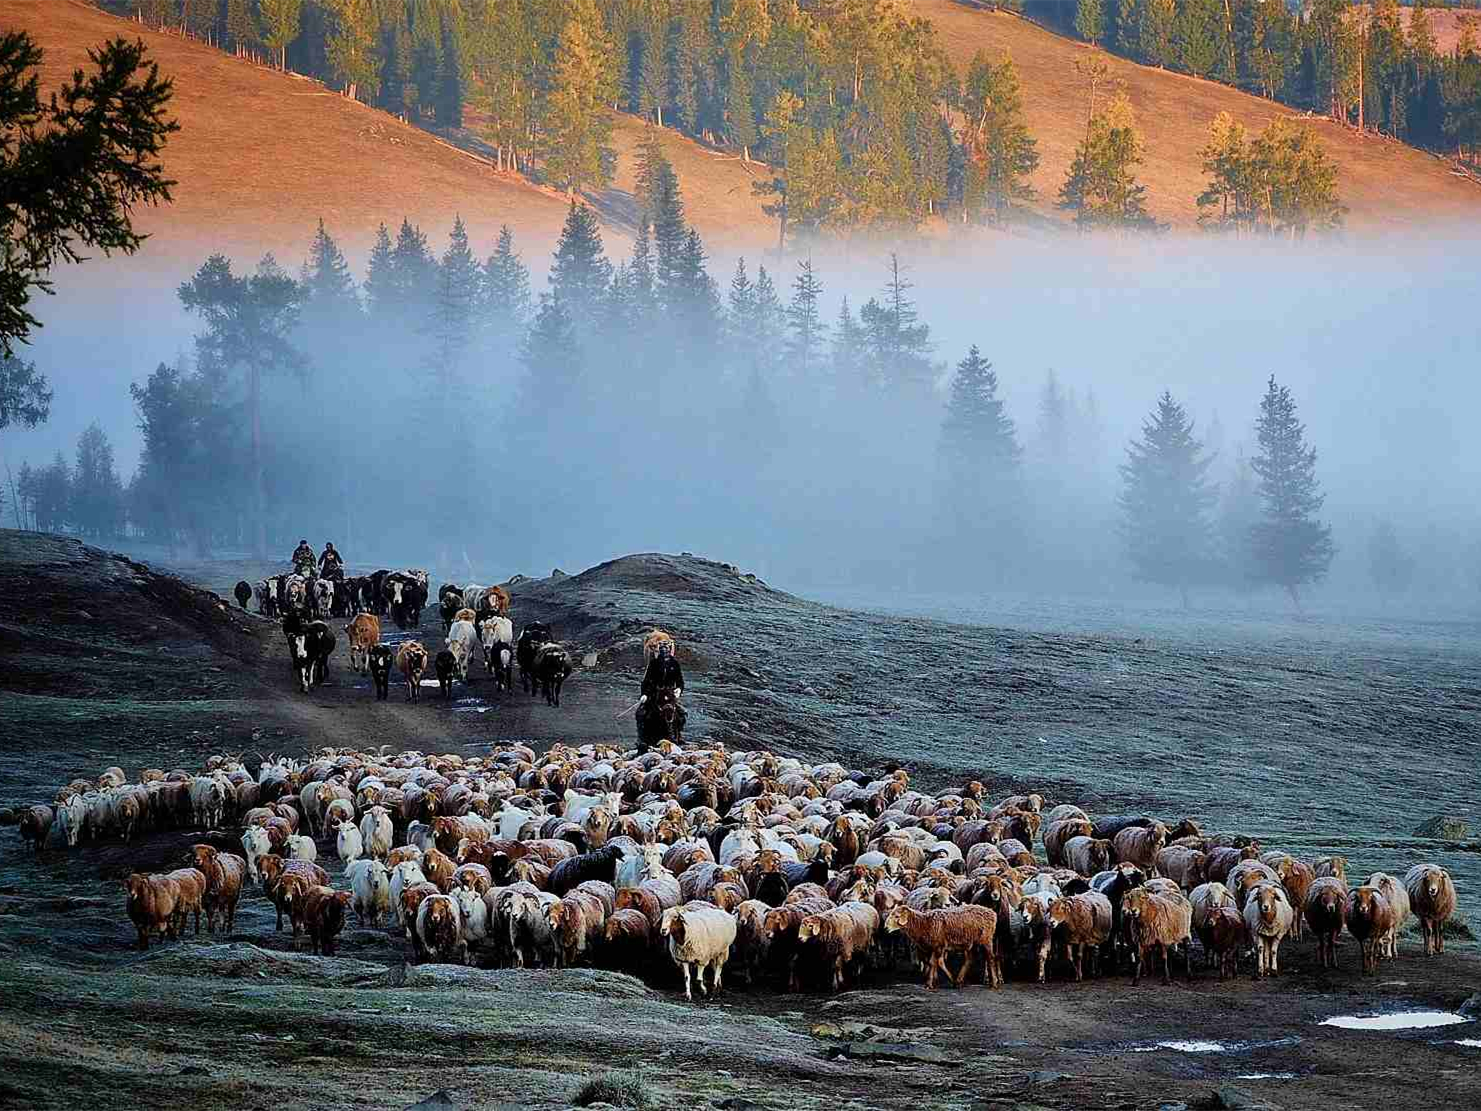 The annual migration for nomadic people in NW China